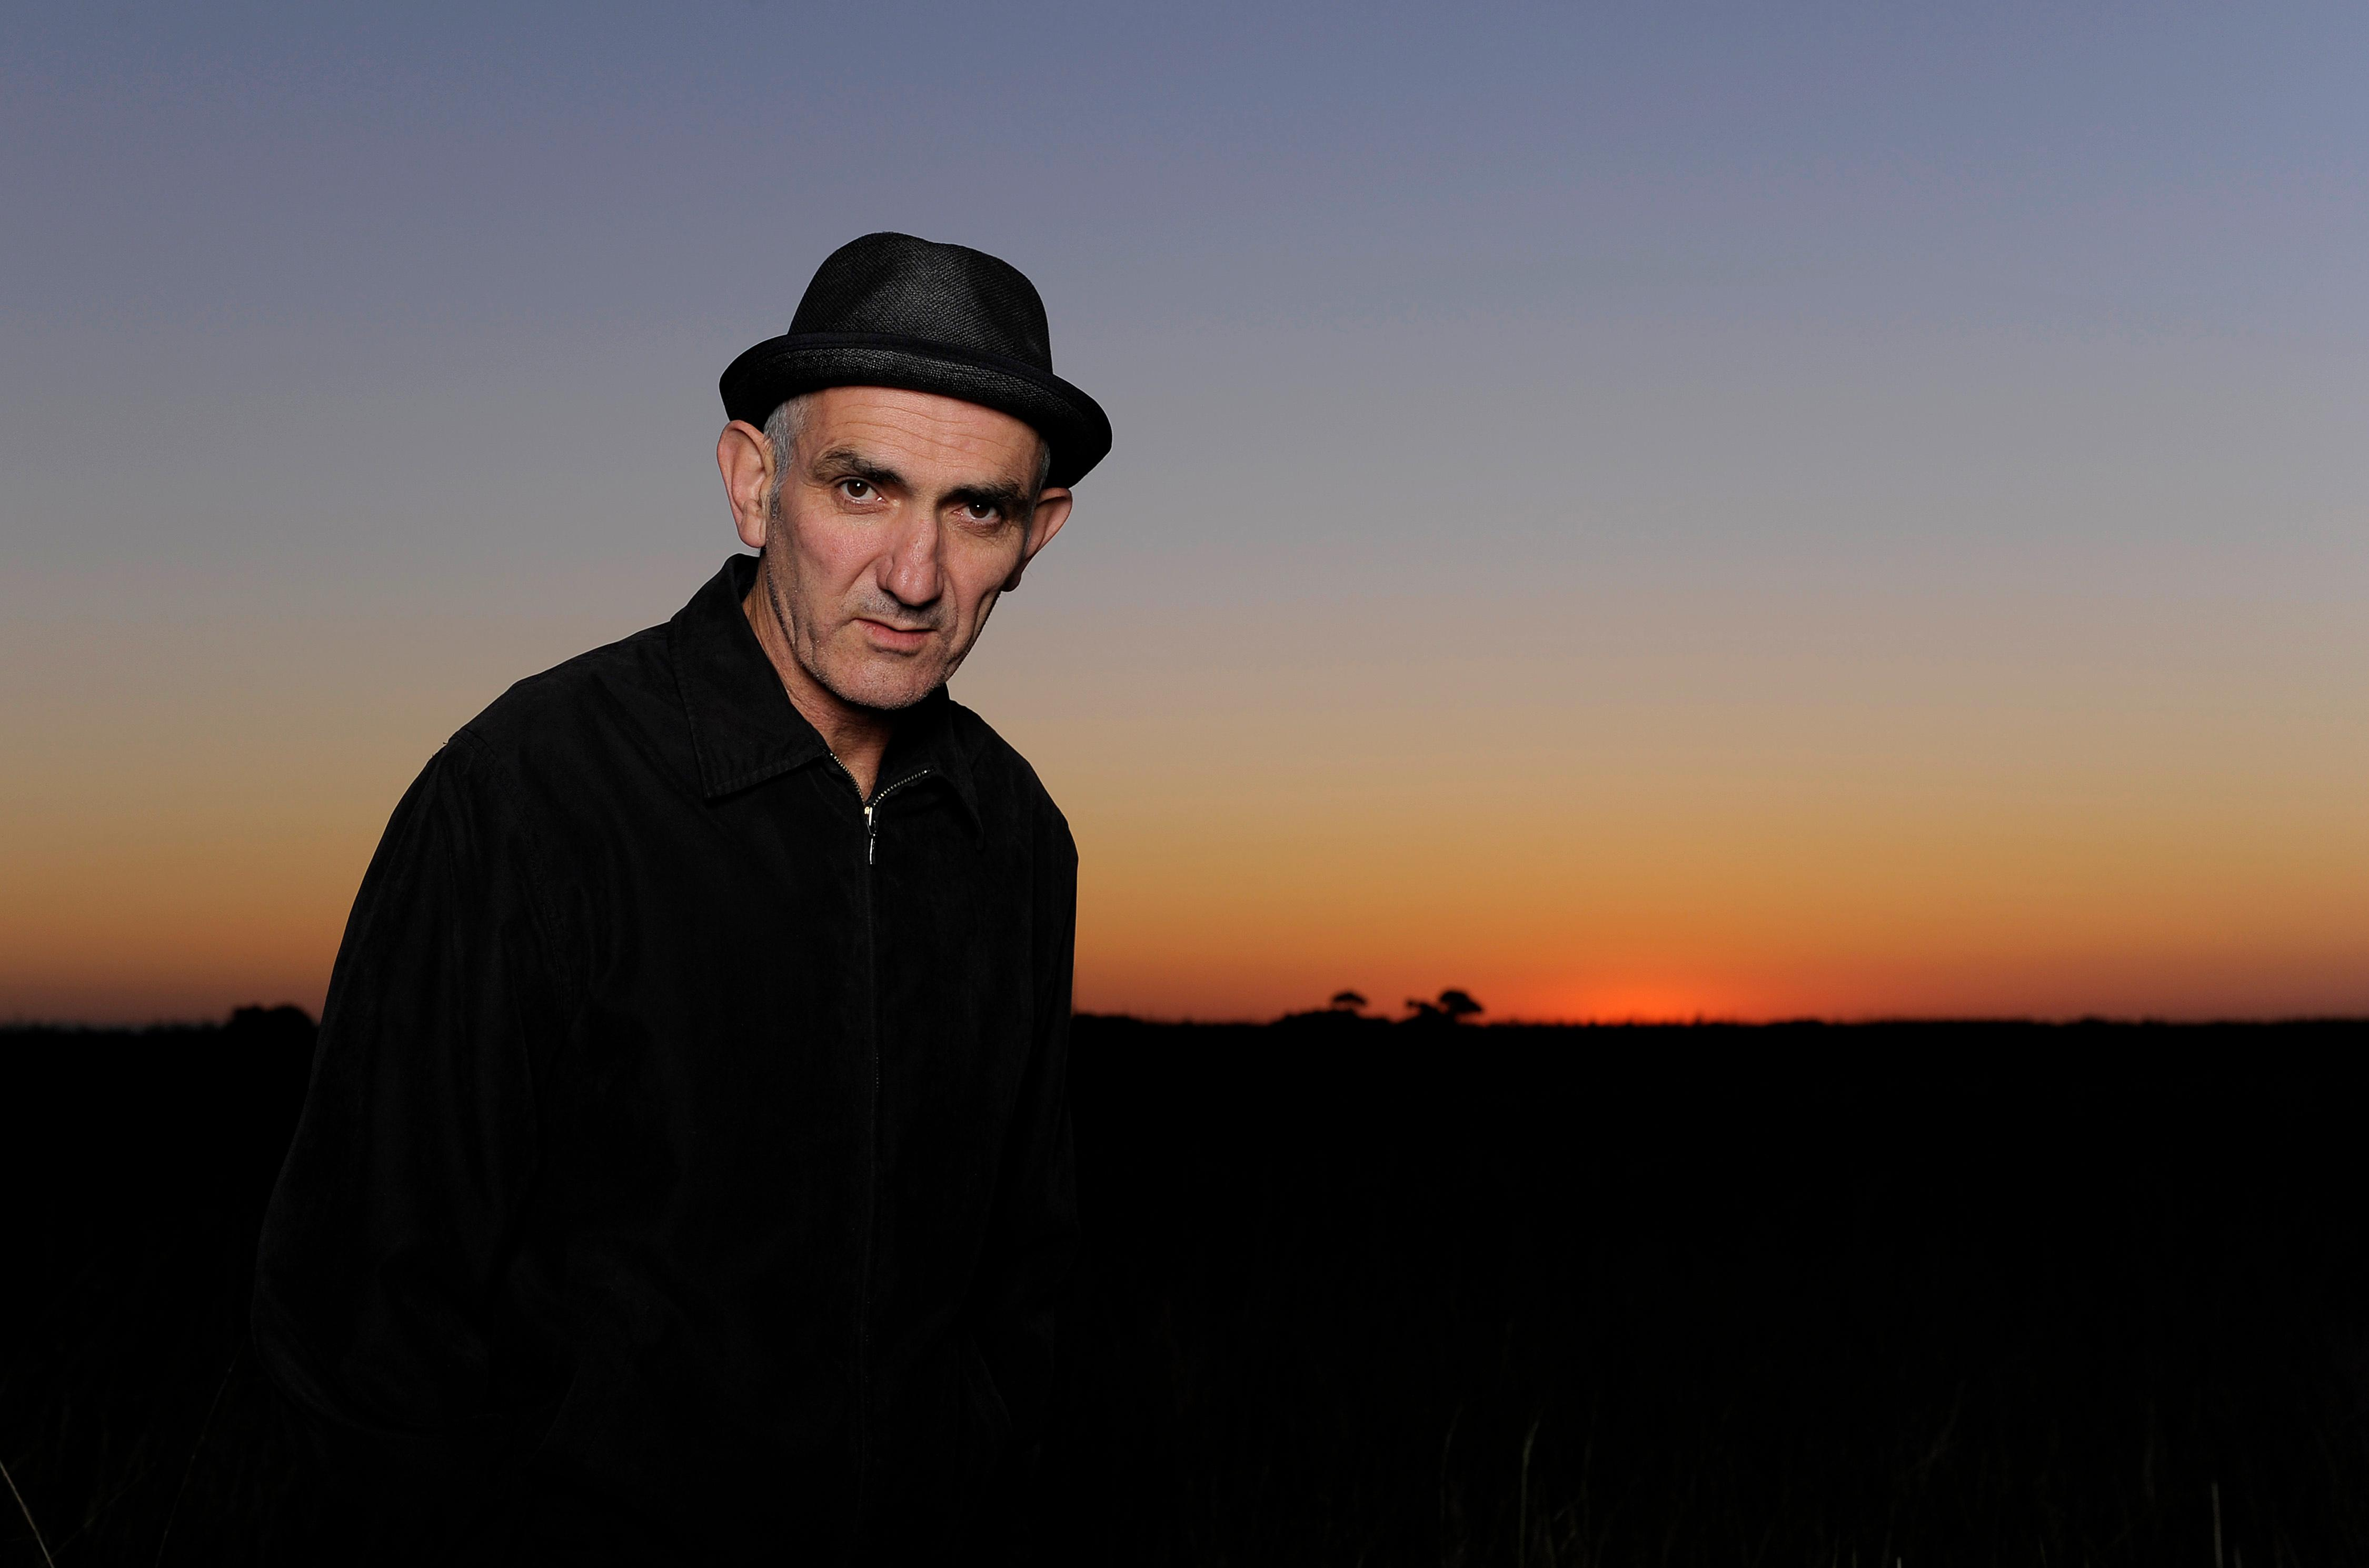 'Magpies are the sound I remember most': bird-watching with Paul Kelly